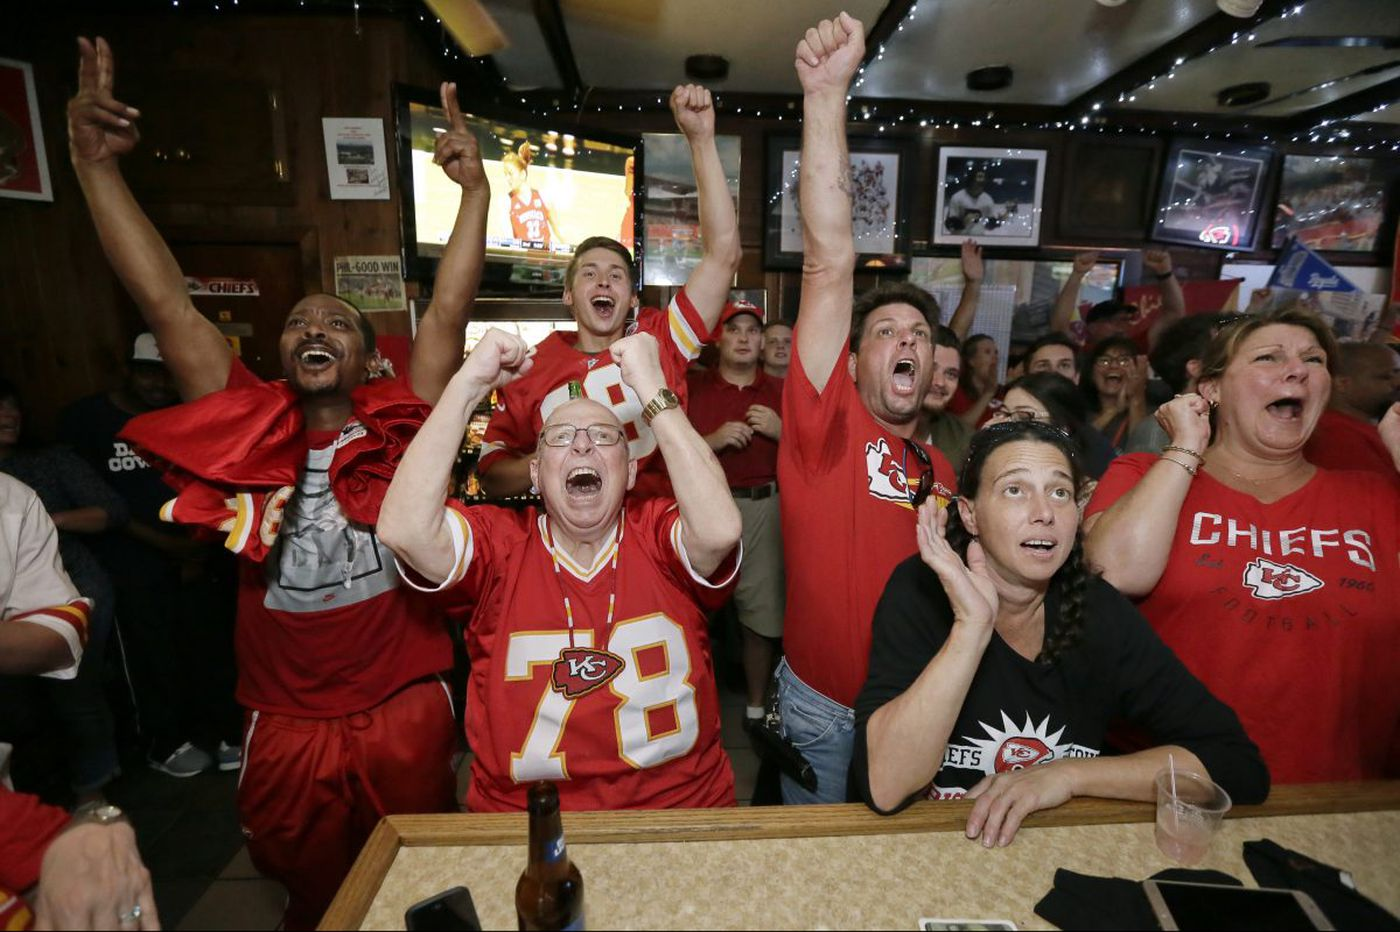 Big Charlie's Saloon: the one place celebrating the Kansas City Chiefs victory